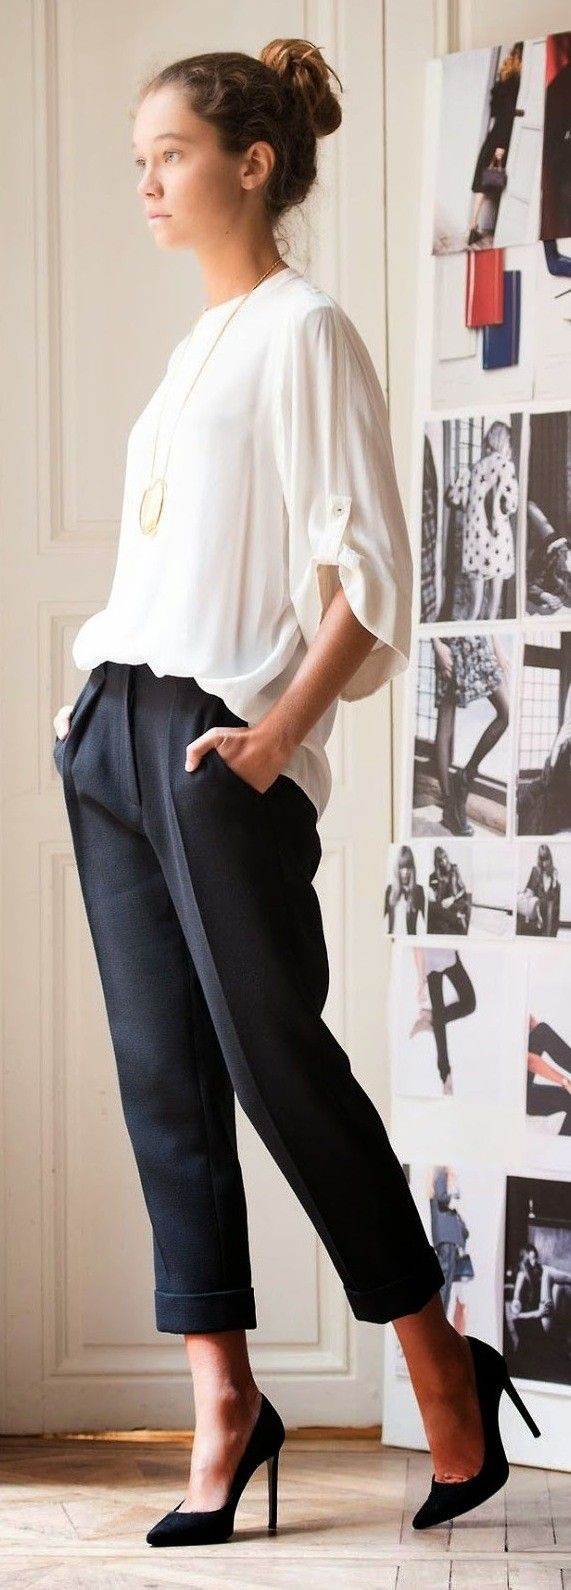 Work Outfit   fashion style minimal 105